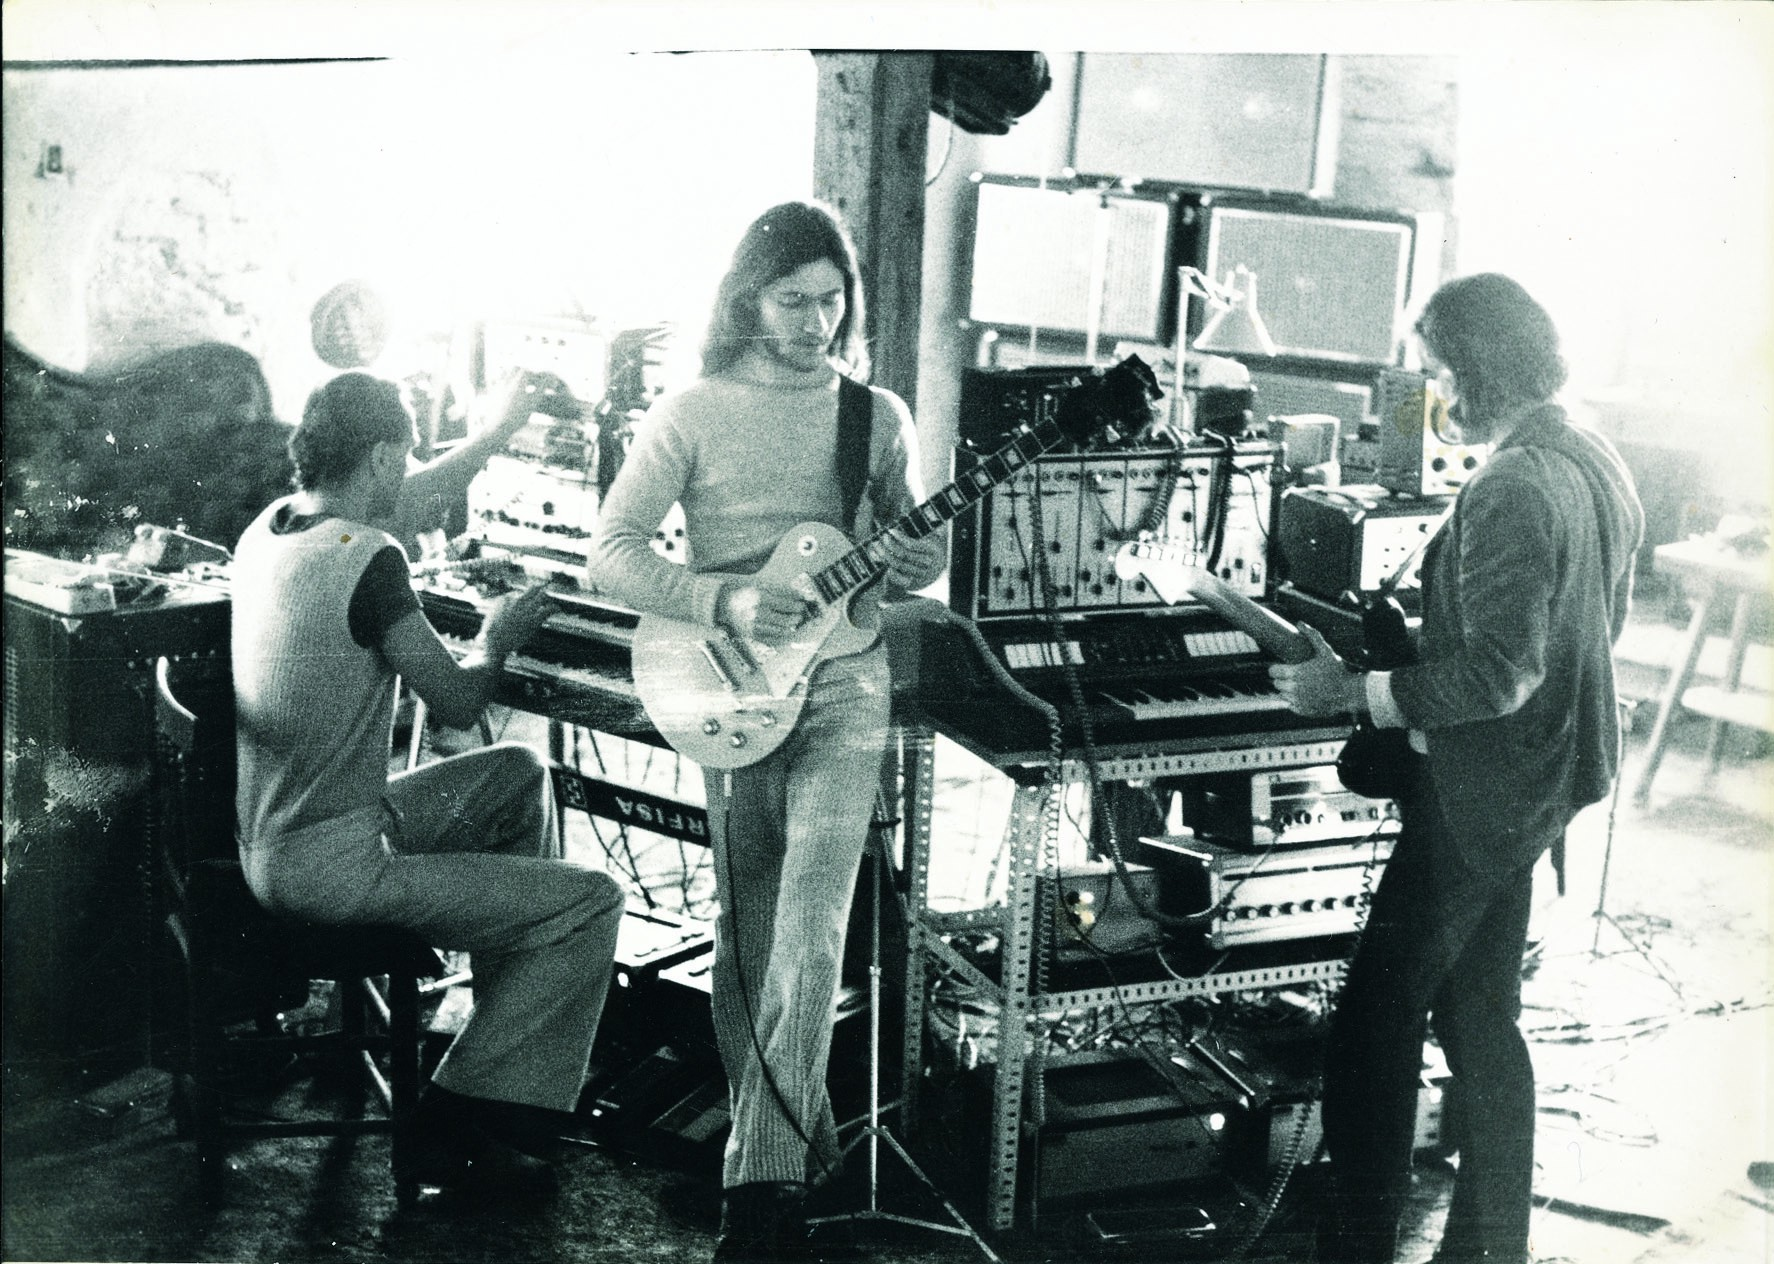 The band, Harmonia, gathered around several keyboards and modular synthesizers, performing a song